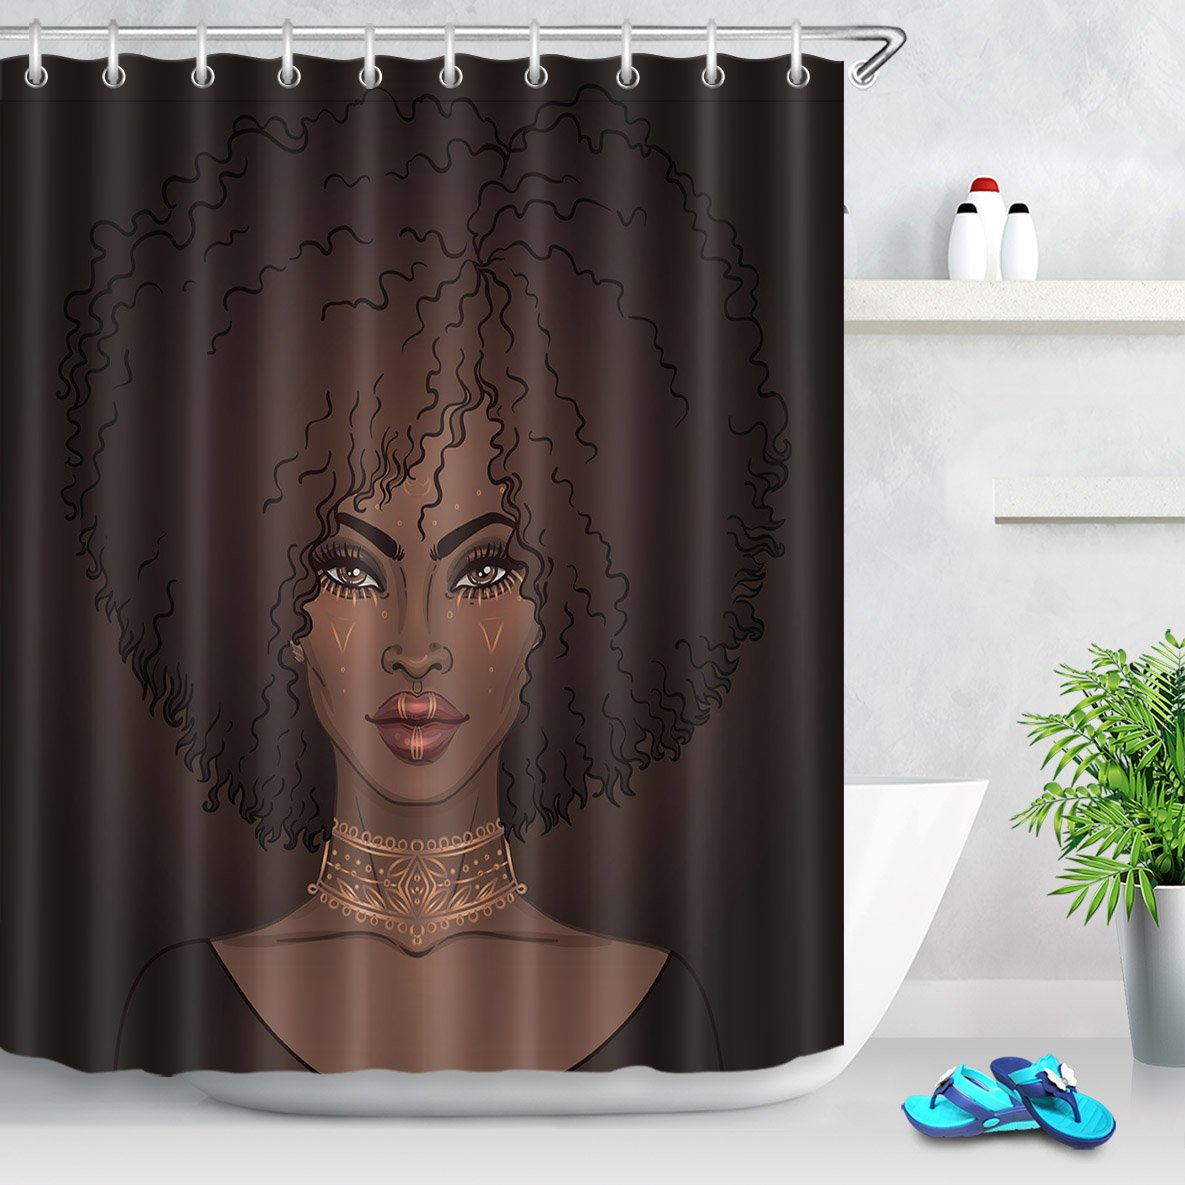 Amazon.com: LB Black Afro Girl Shower Curtain for Shower Stall by ...